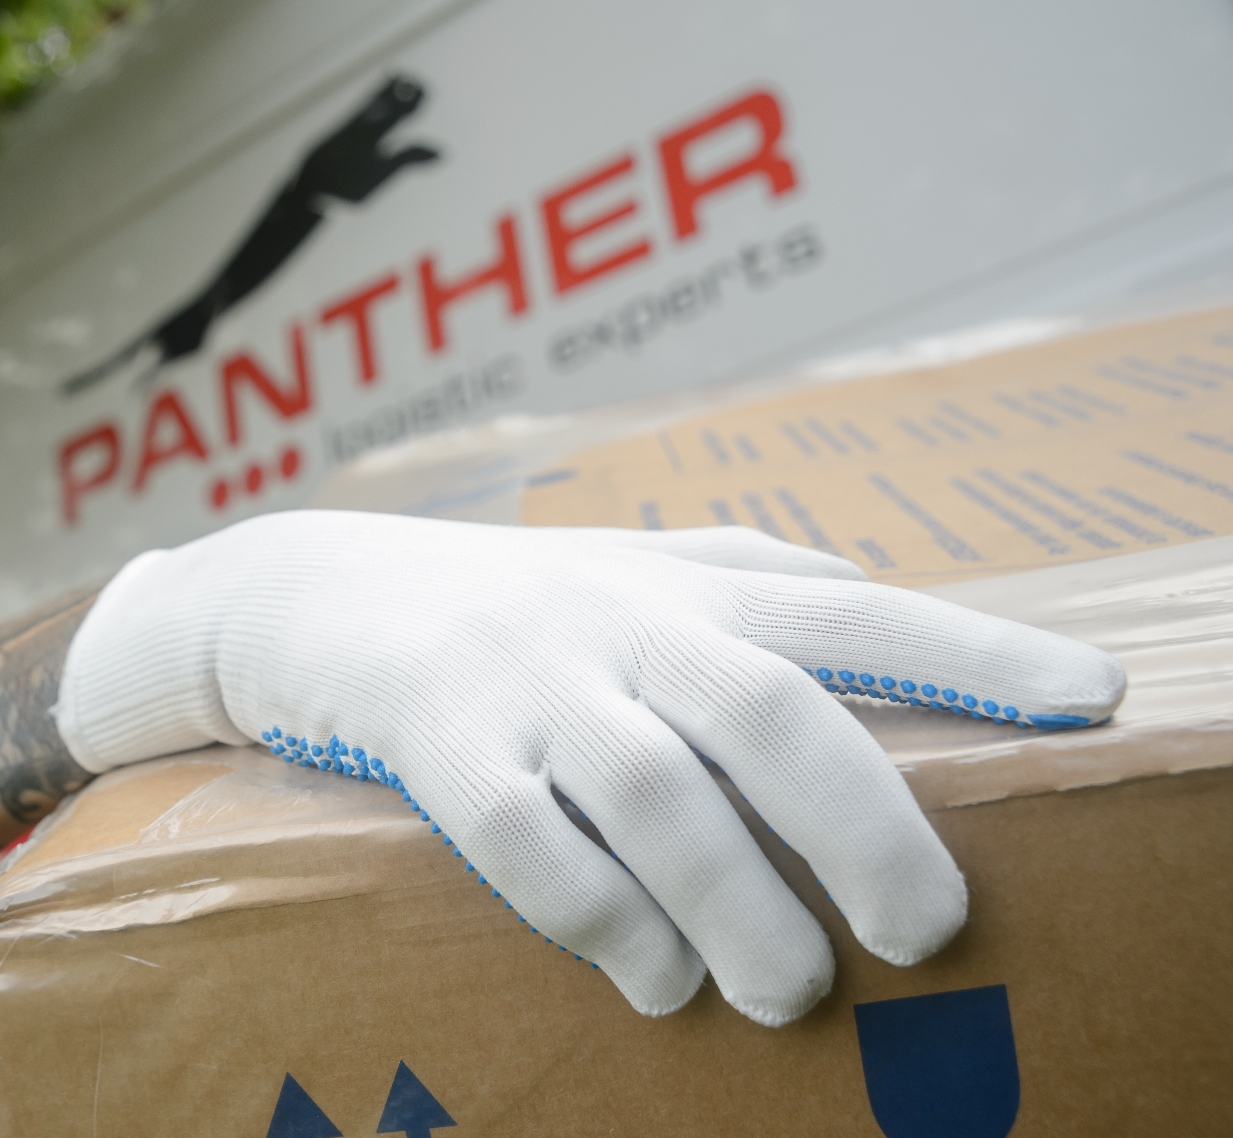 Panther to launch Sunday deliveries and two-hour windows